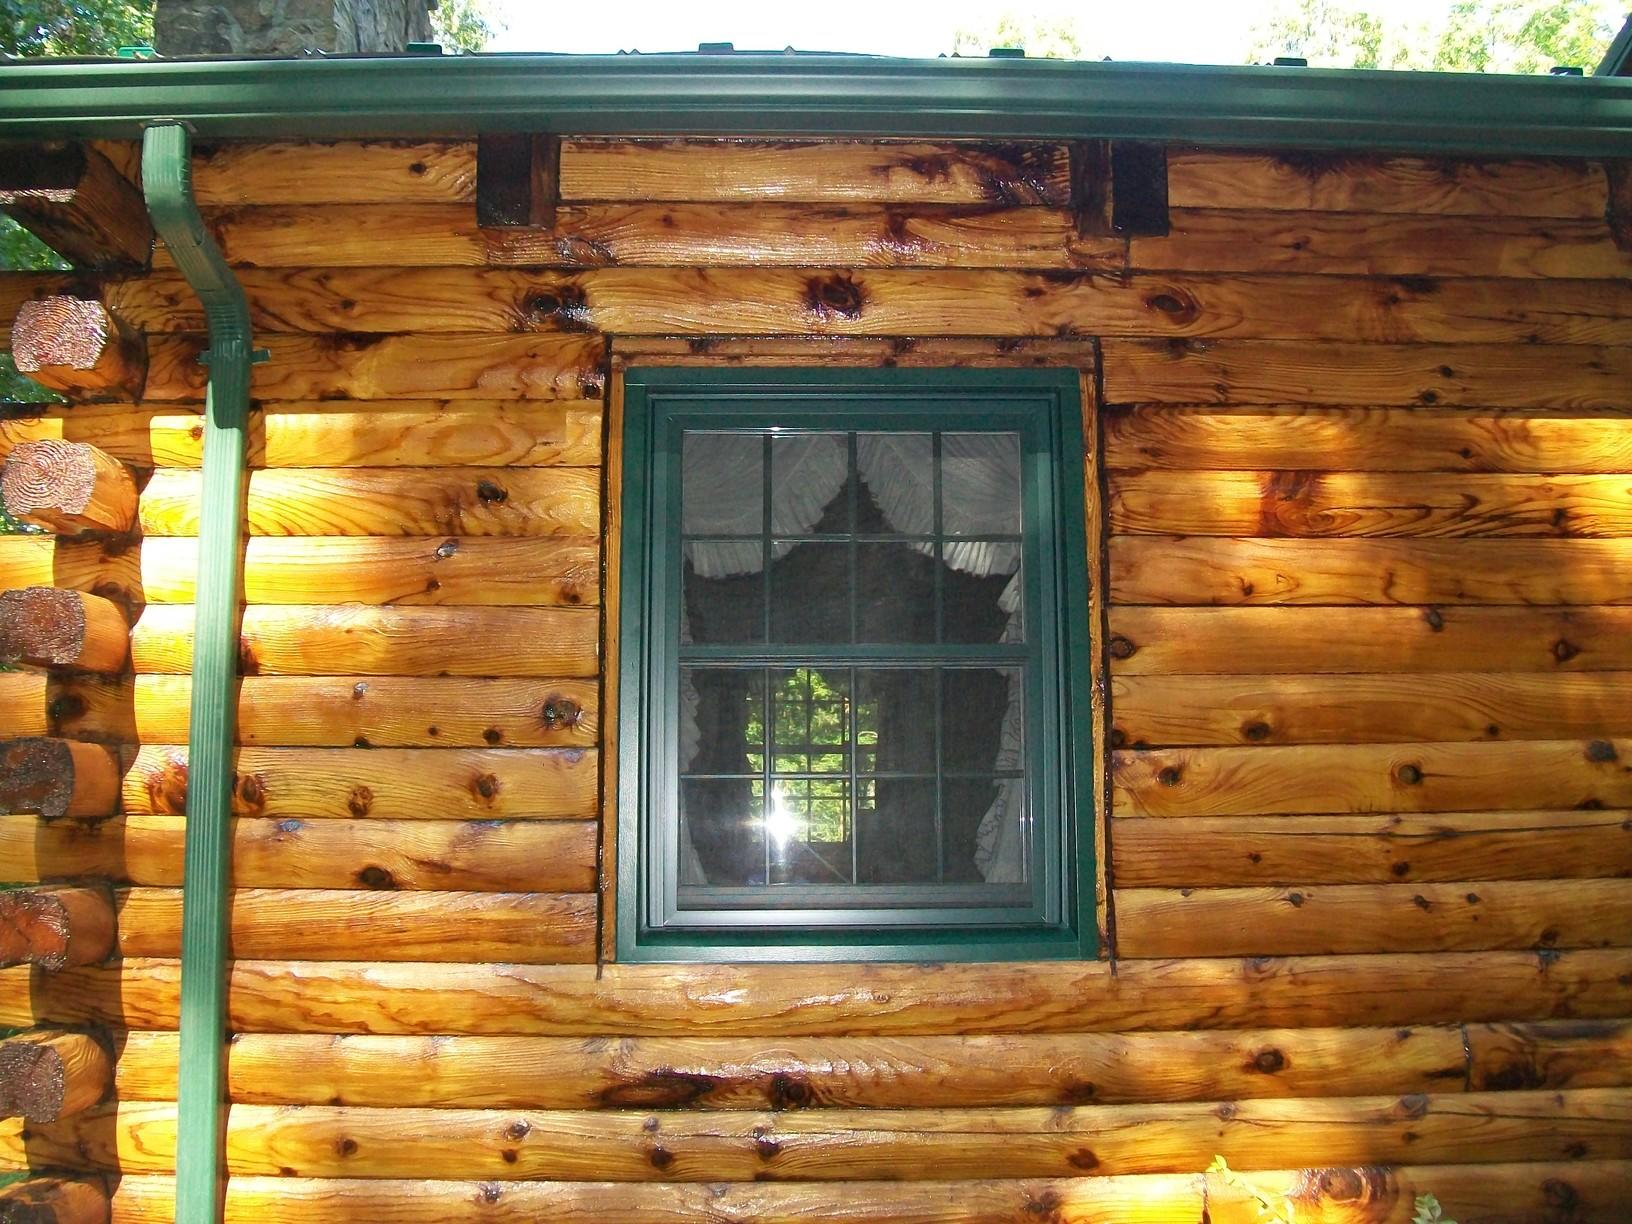 Enterior view of striking double hung installed in a log cabin home in Scenery Hill.